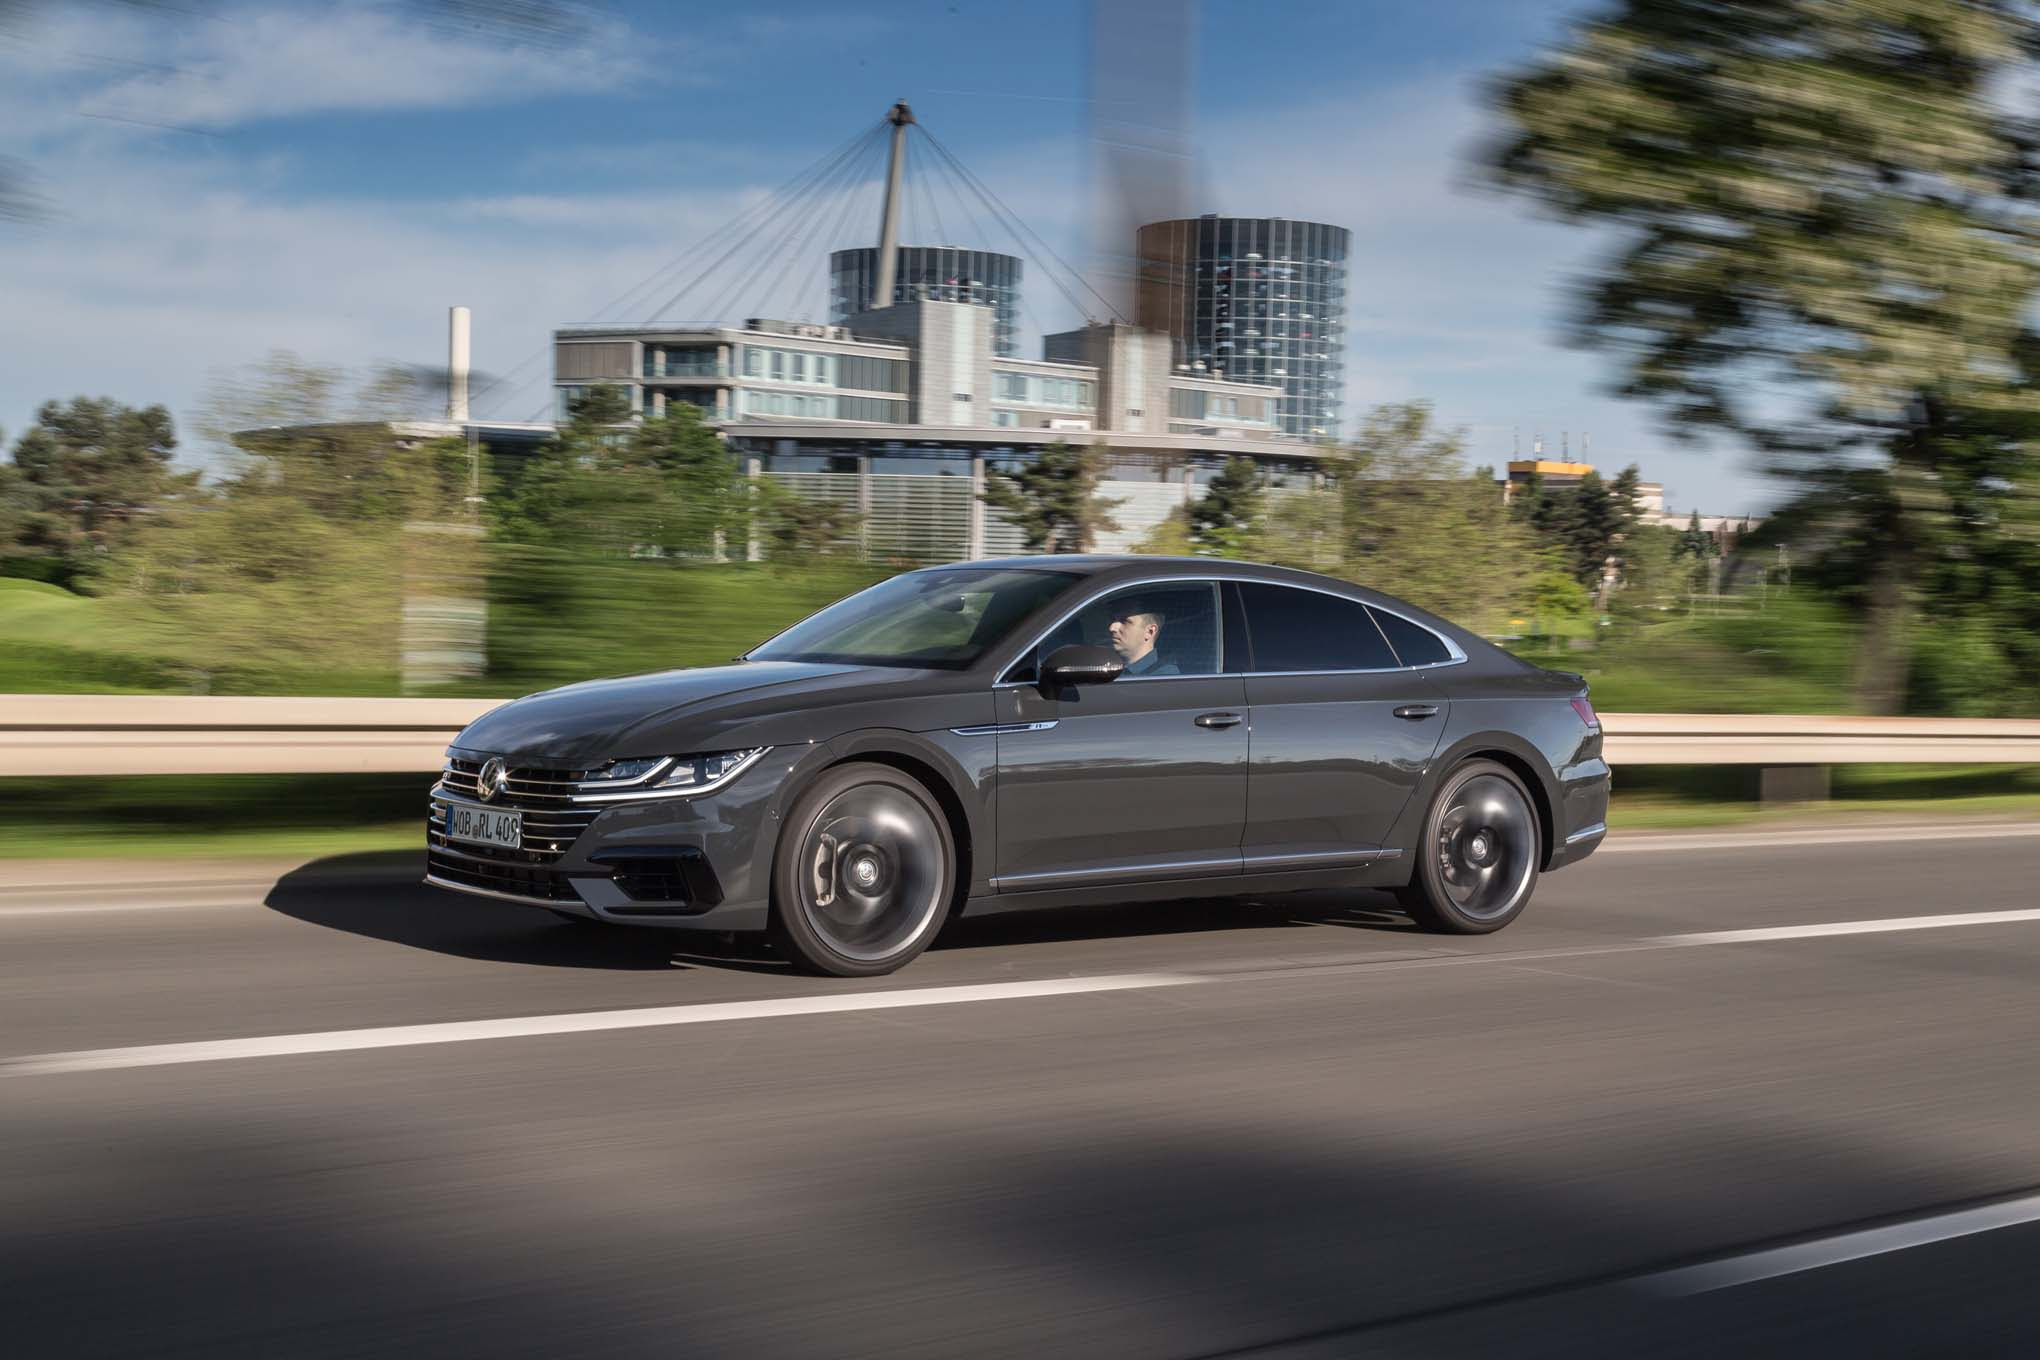 2019 Volkswagen Arteon First Drive Review   Automobile ...